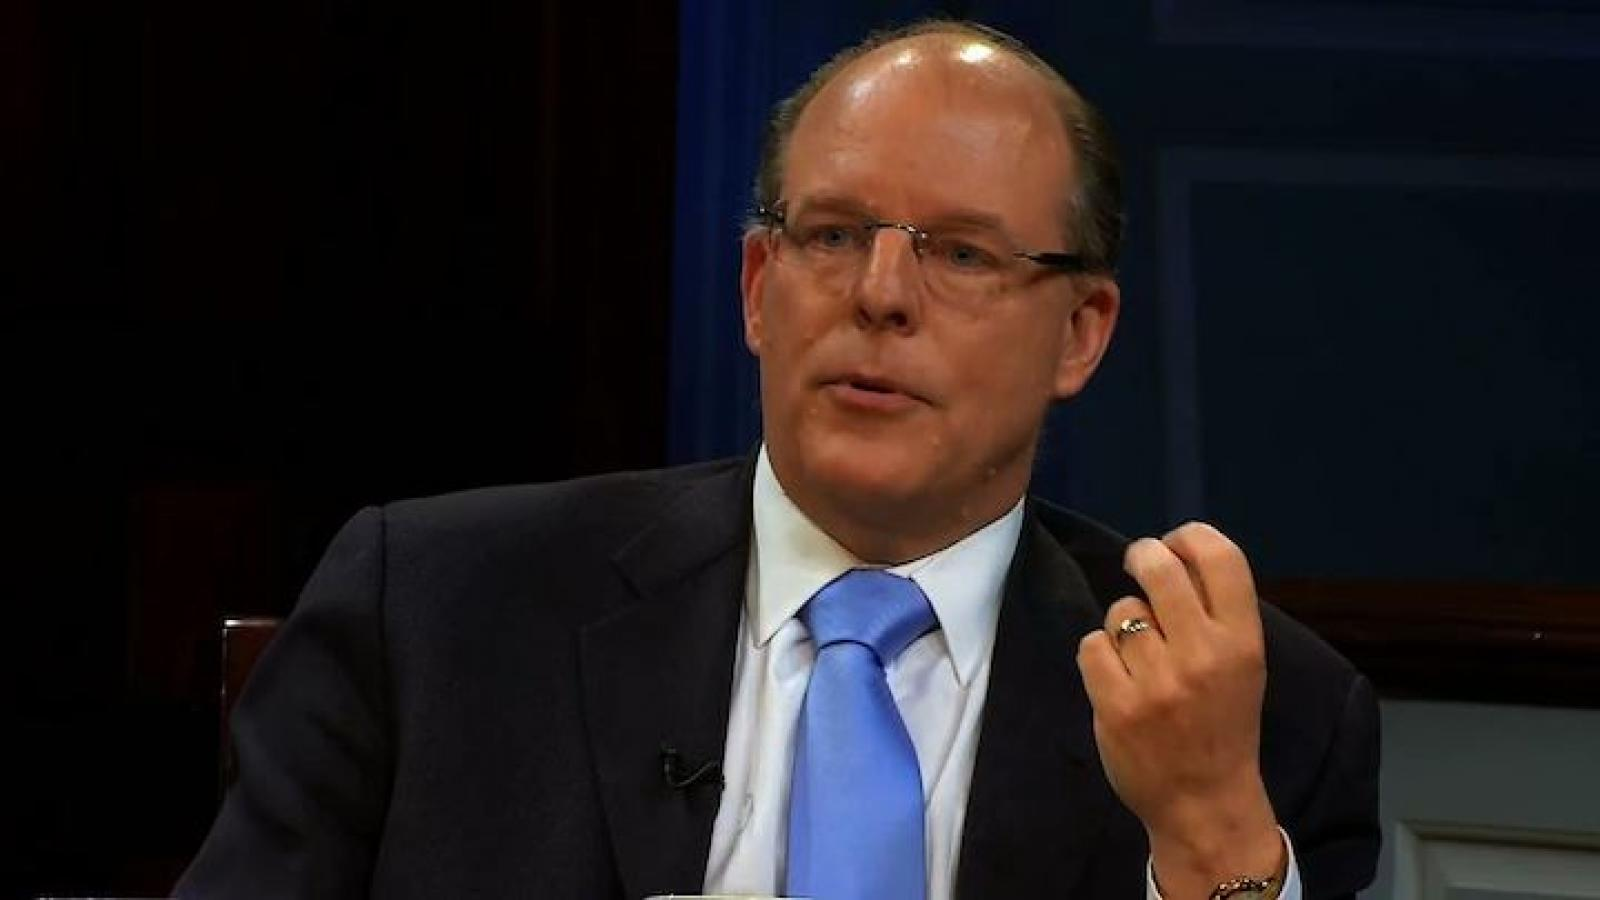 Former Republican official Peter Wehner discusses the rise of tribalism and the decline of fact-based analysis